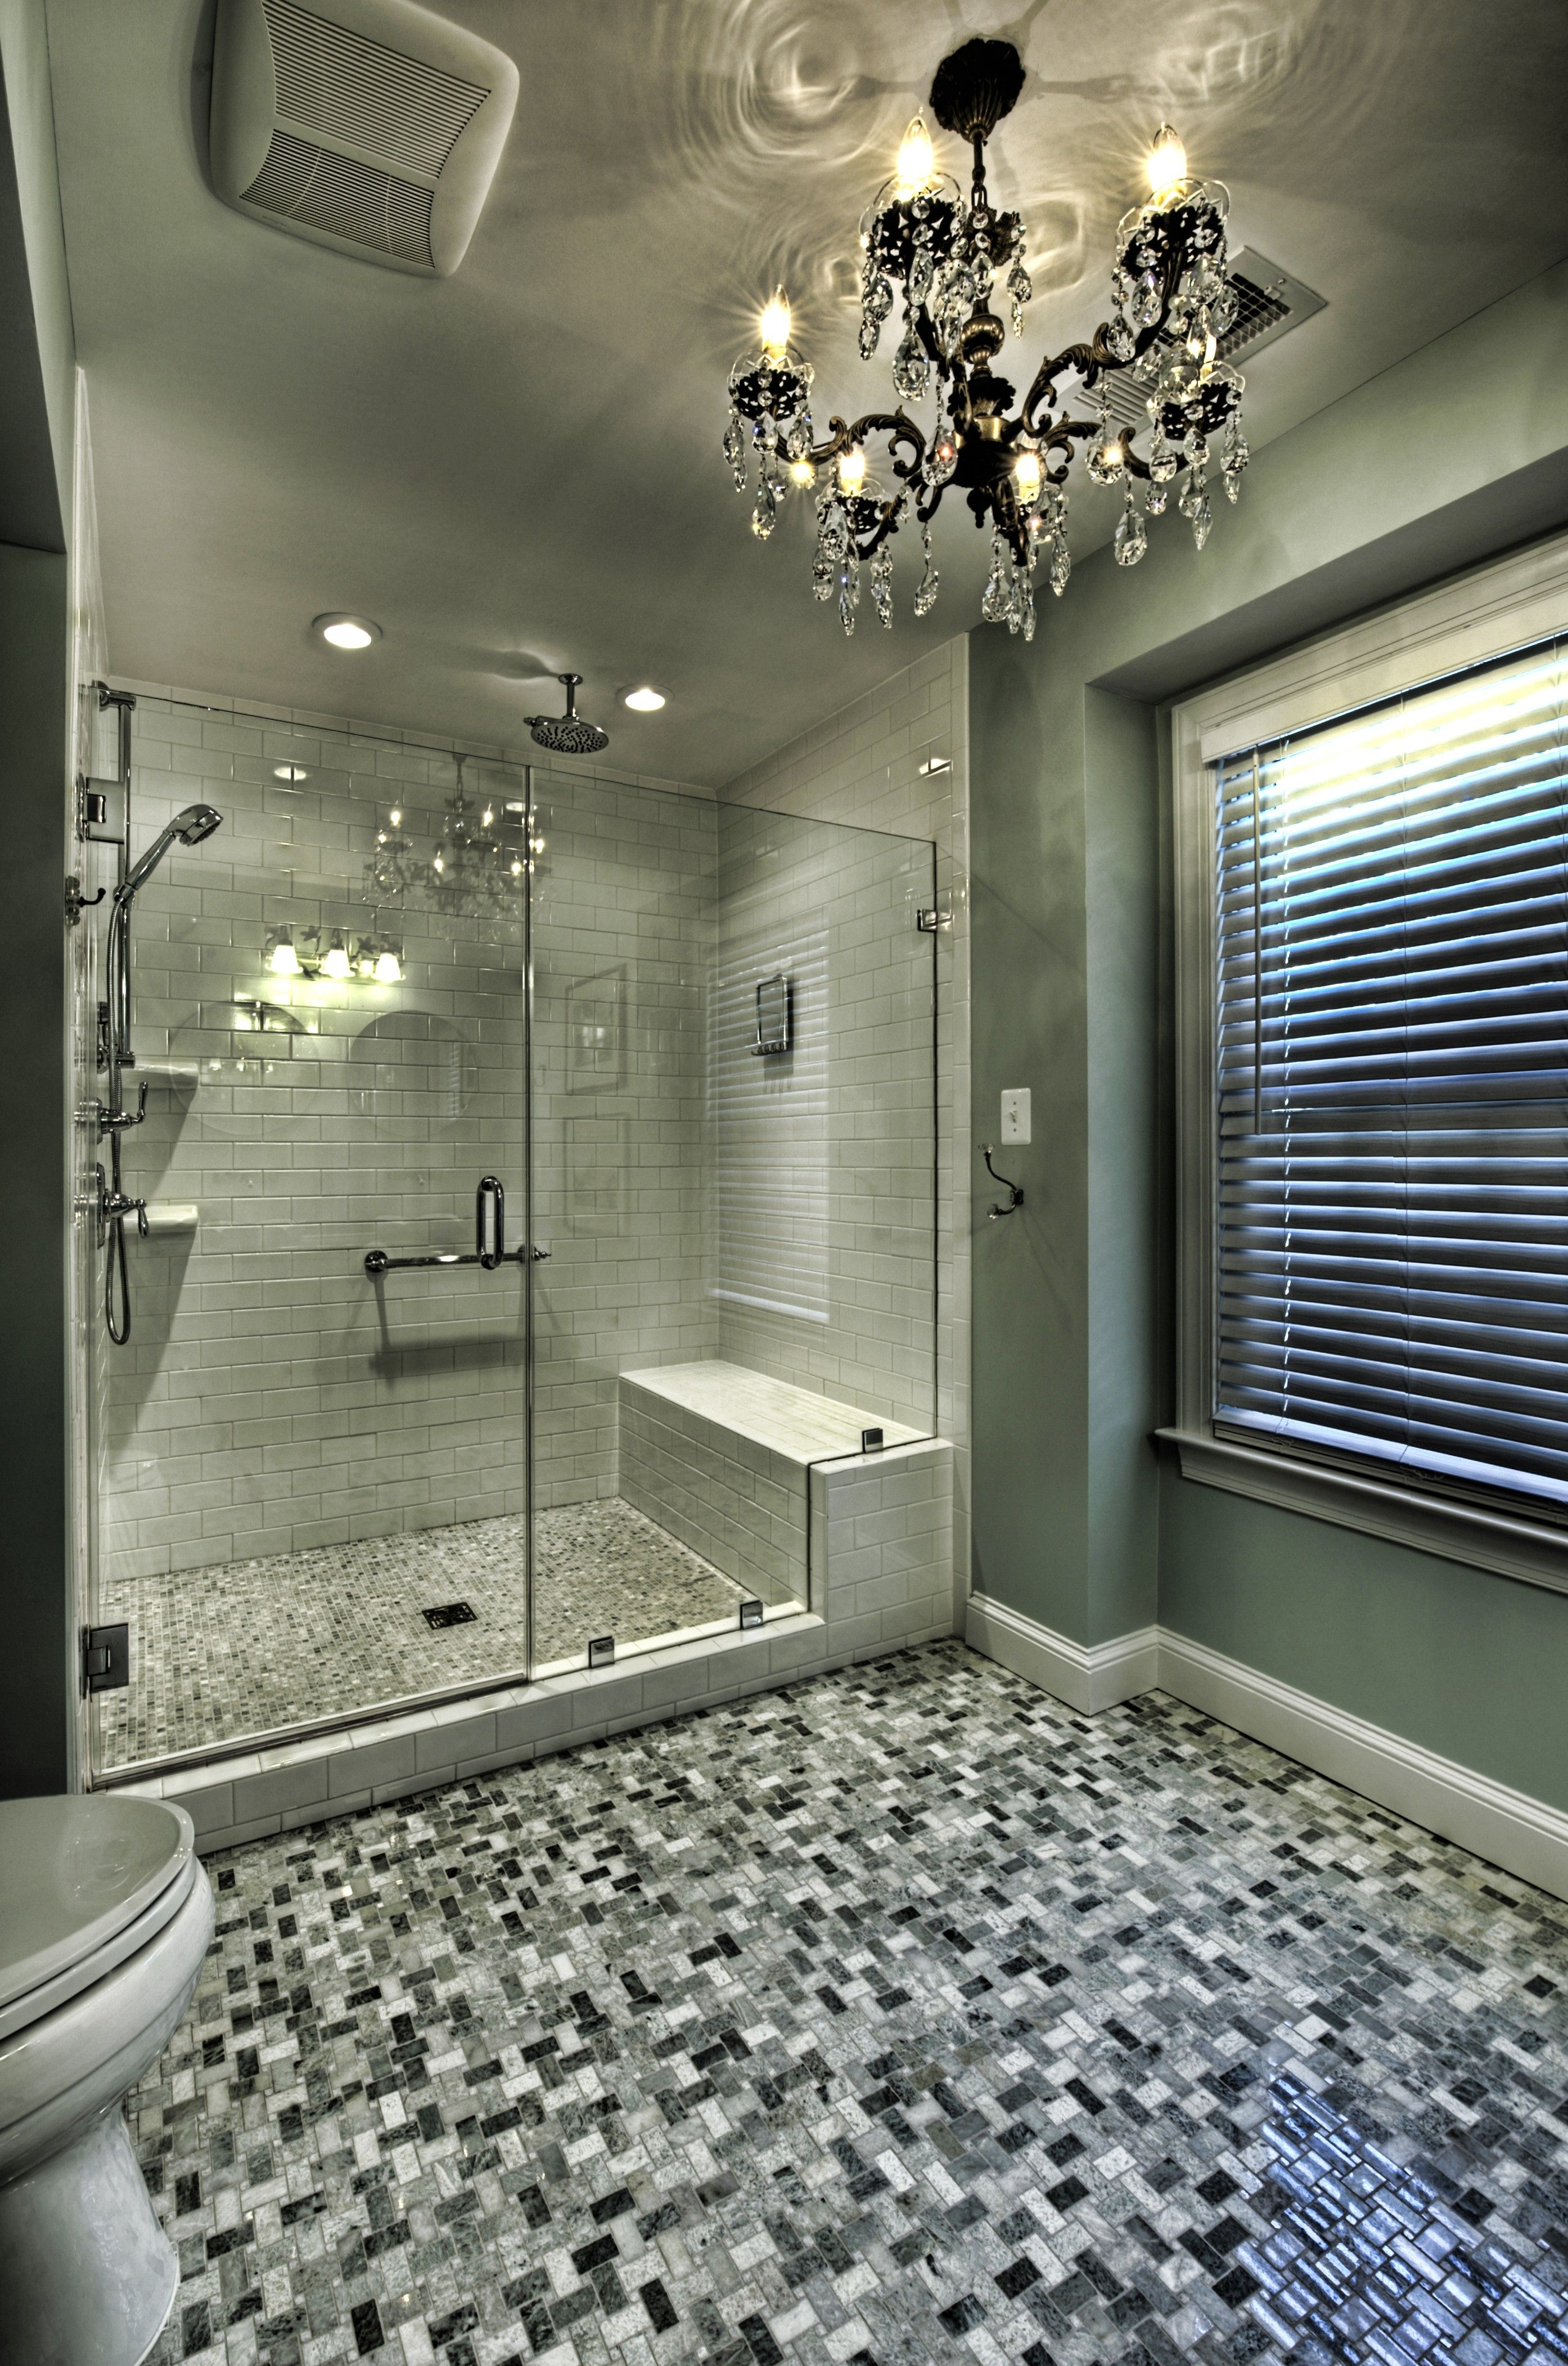 20 beautiful walk in showers that youll feel like royalty in home